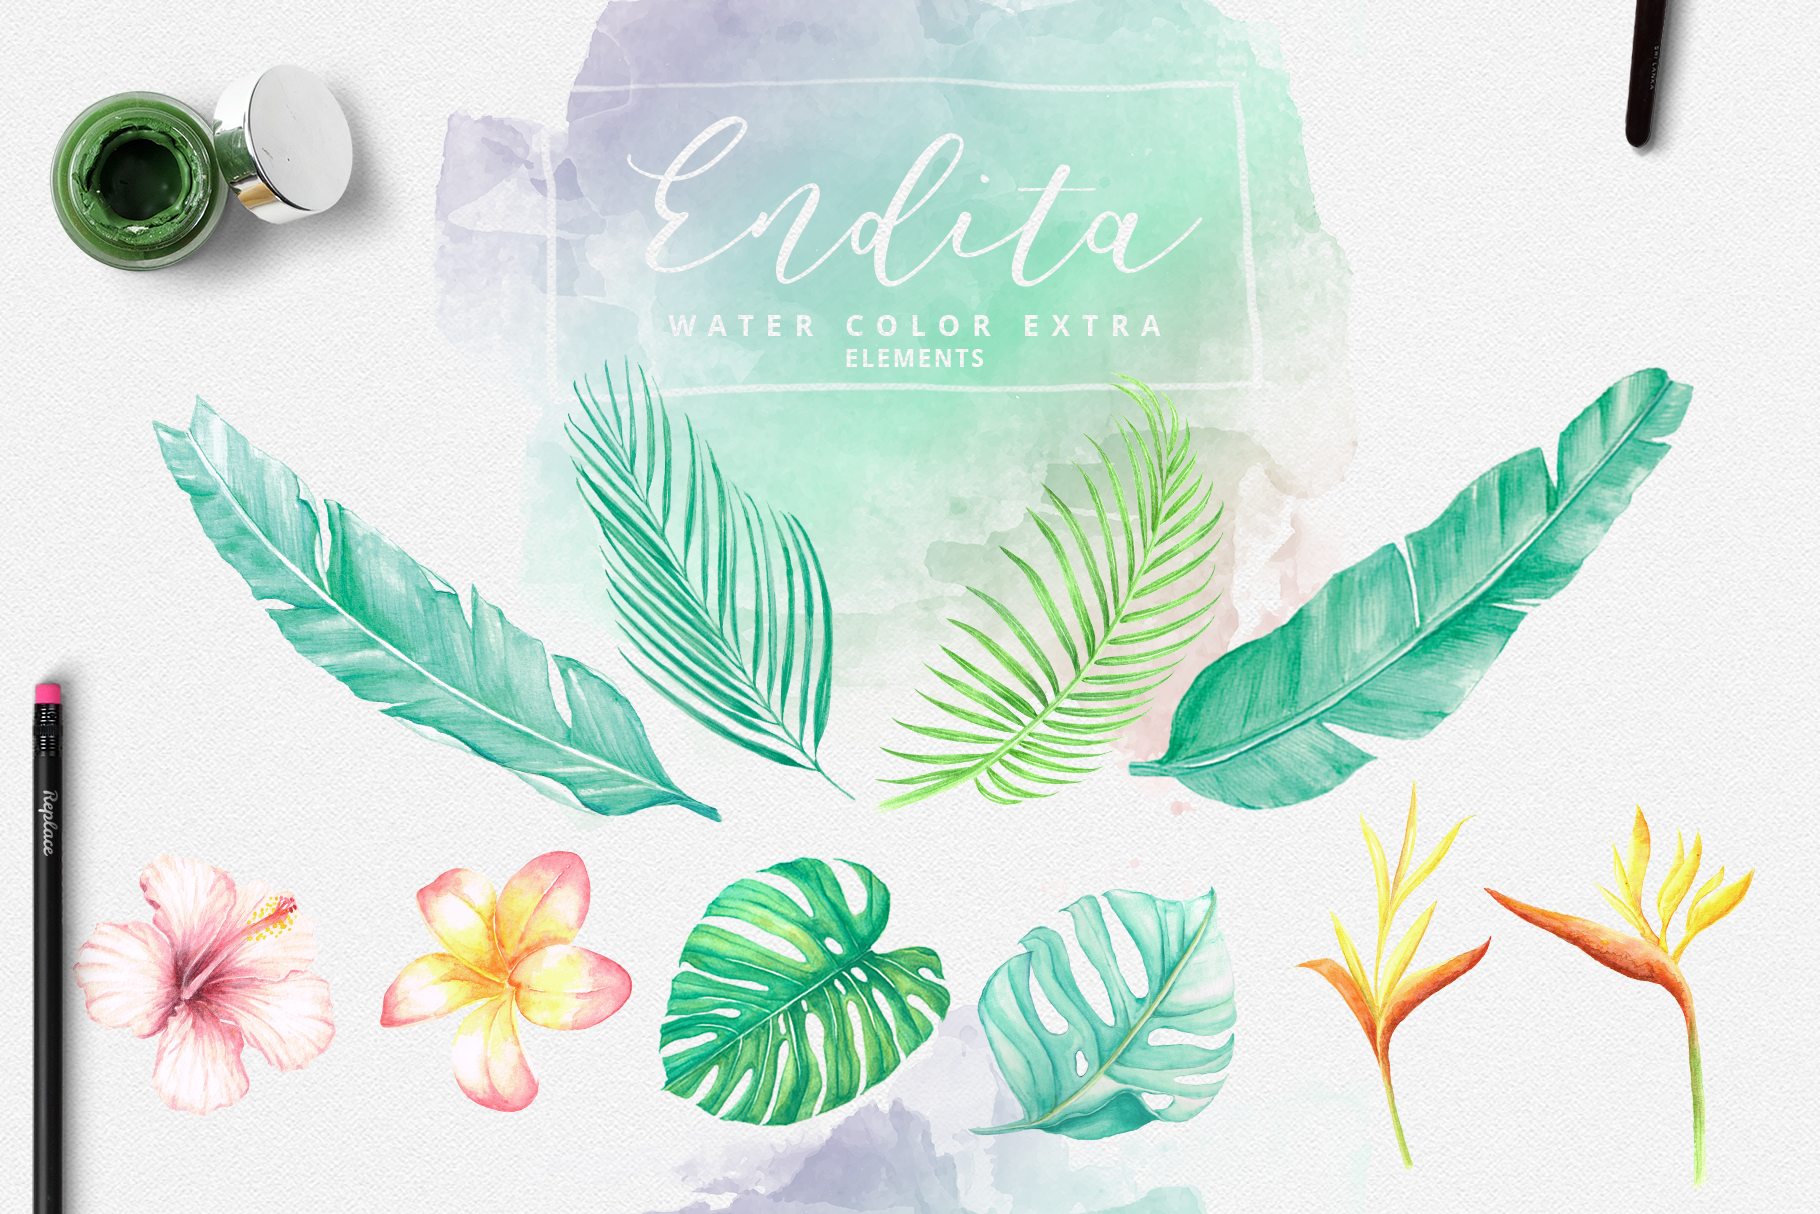 Endita Handwritten Font and Extras example image 10